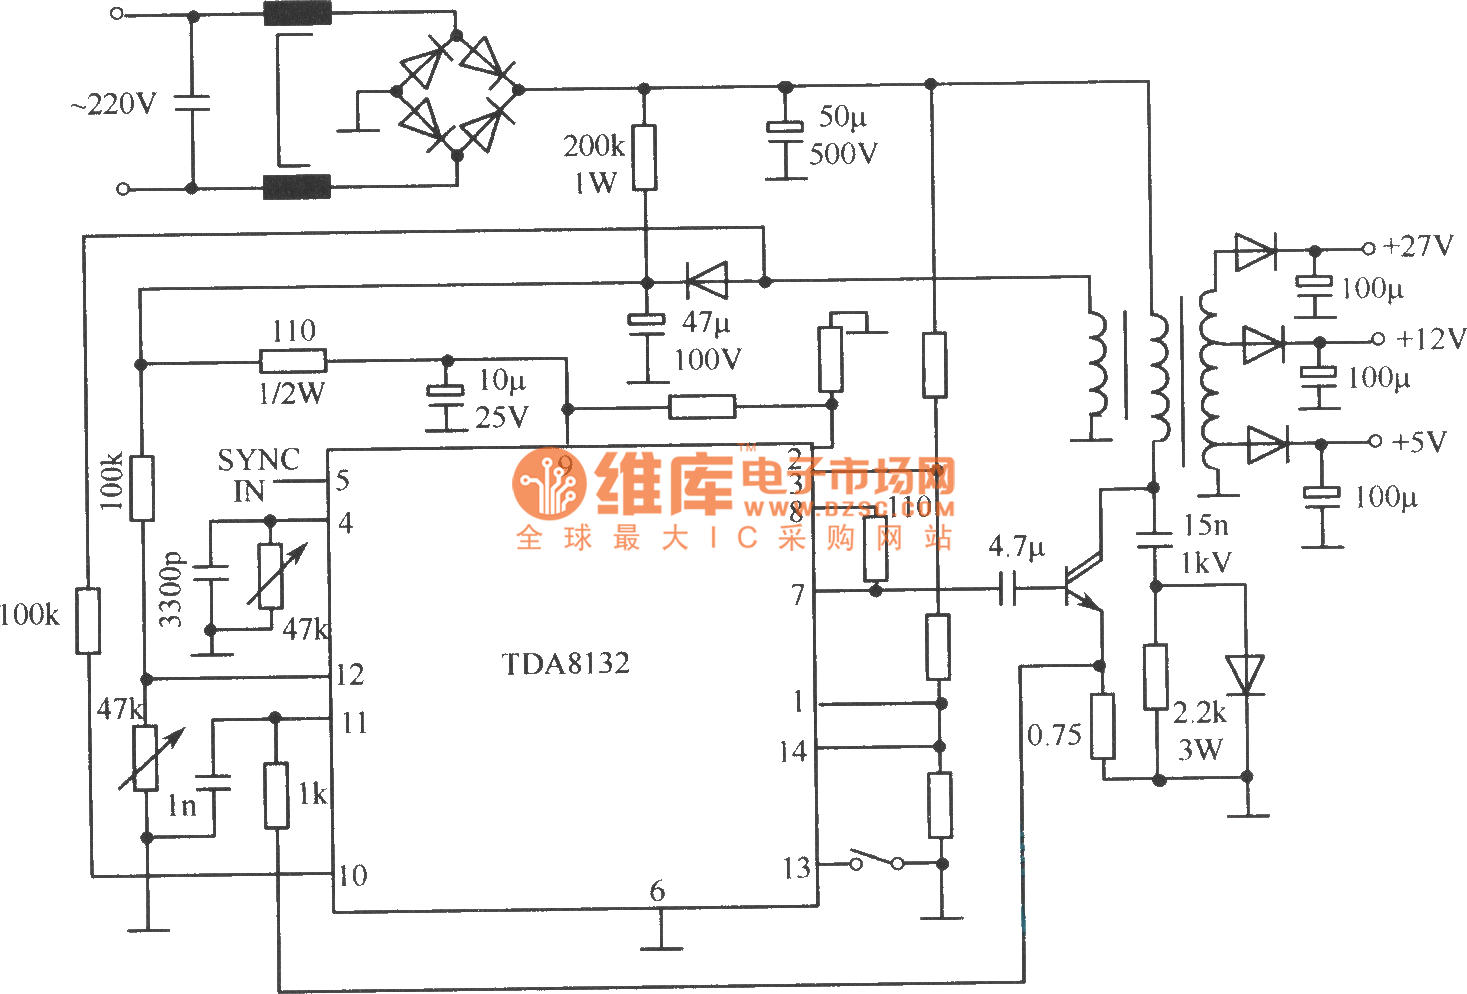 Tda8132 Typical Application Circuit Switching Regualted Power Electric Sunroof Basiccircuit Diagram Seekic Supply